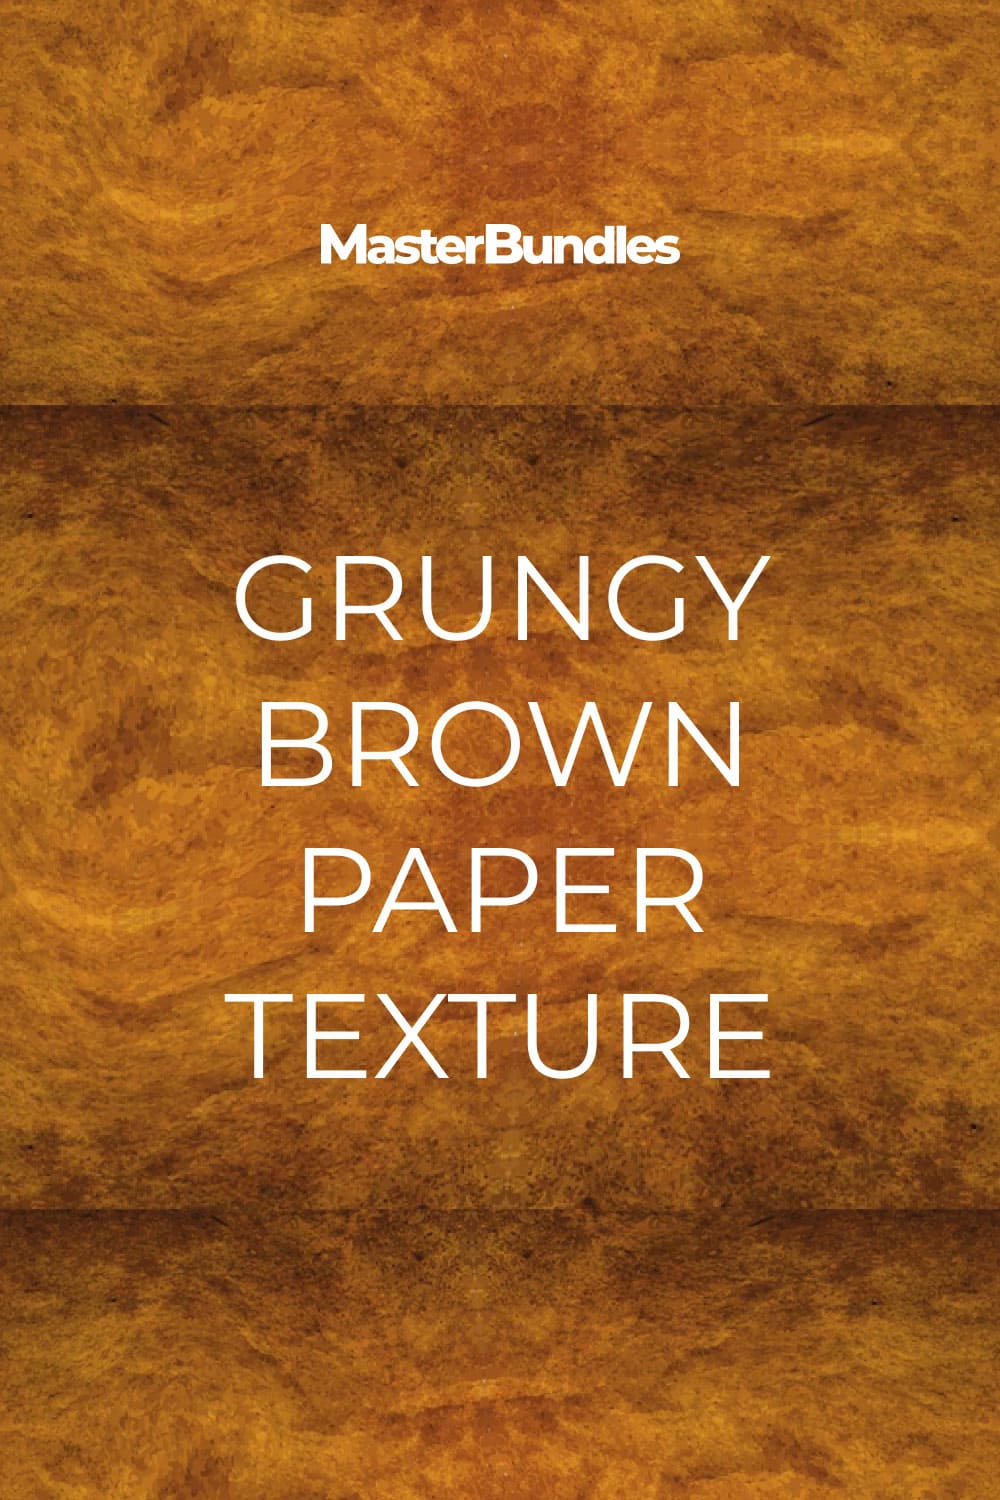 Grungy Brown Paper Texture.